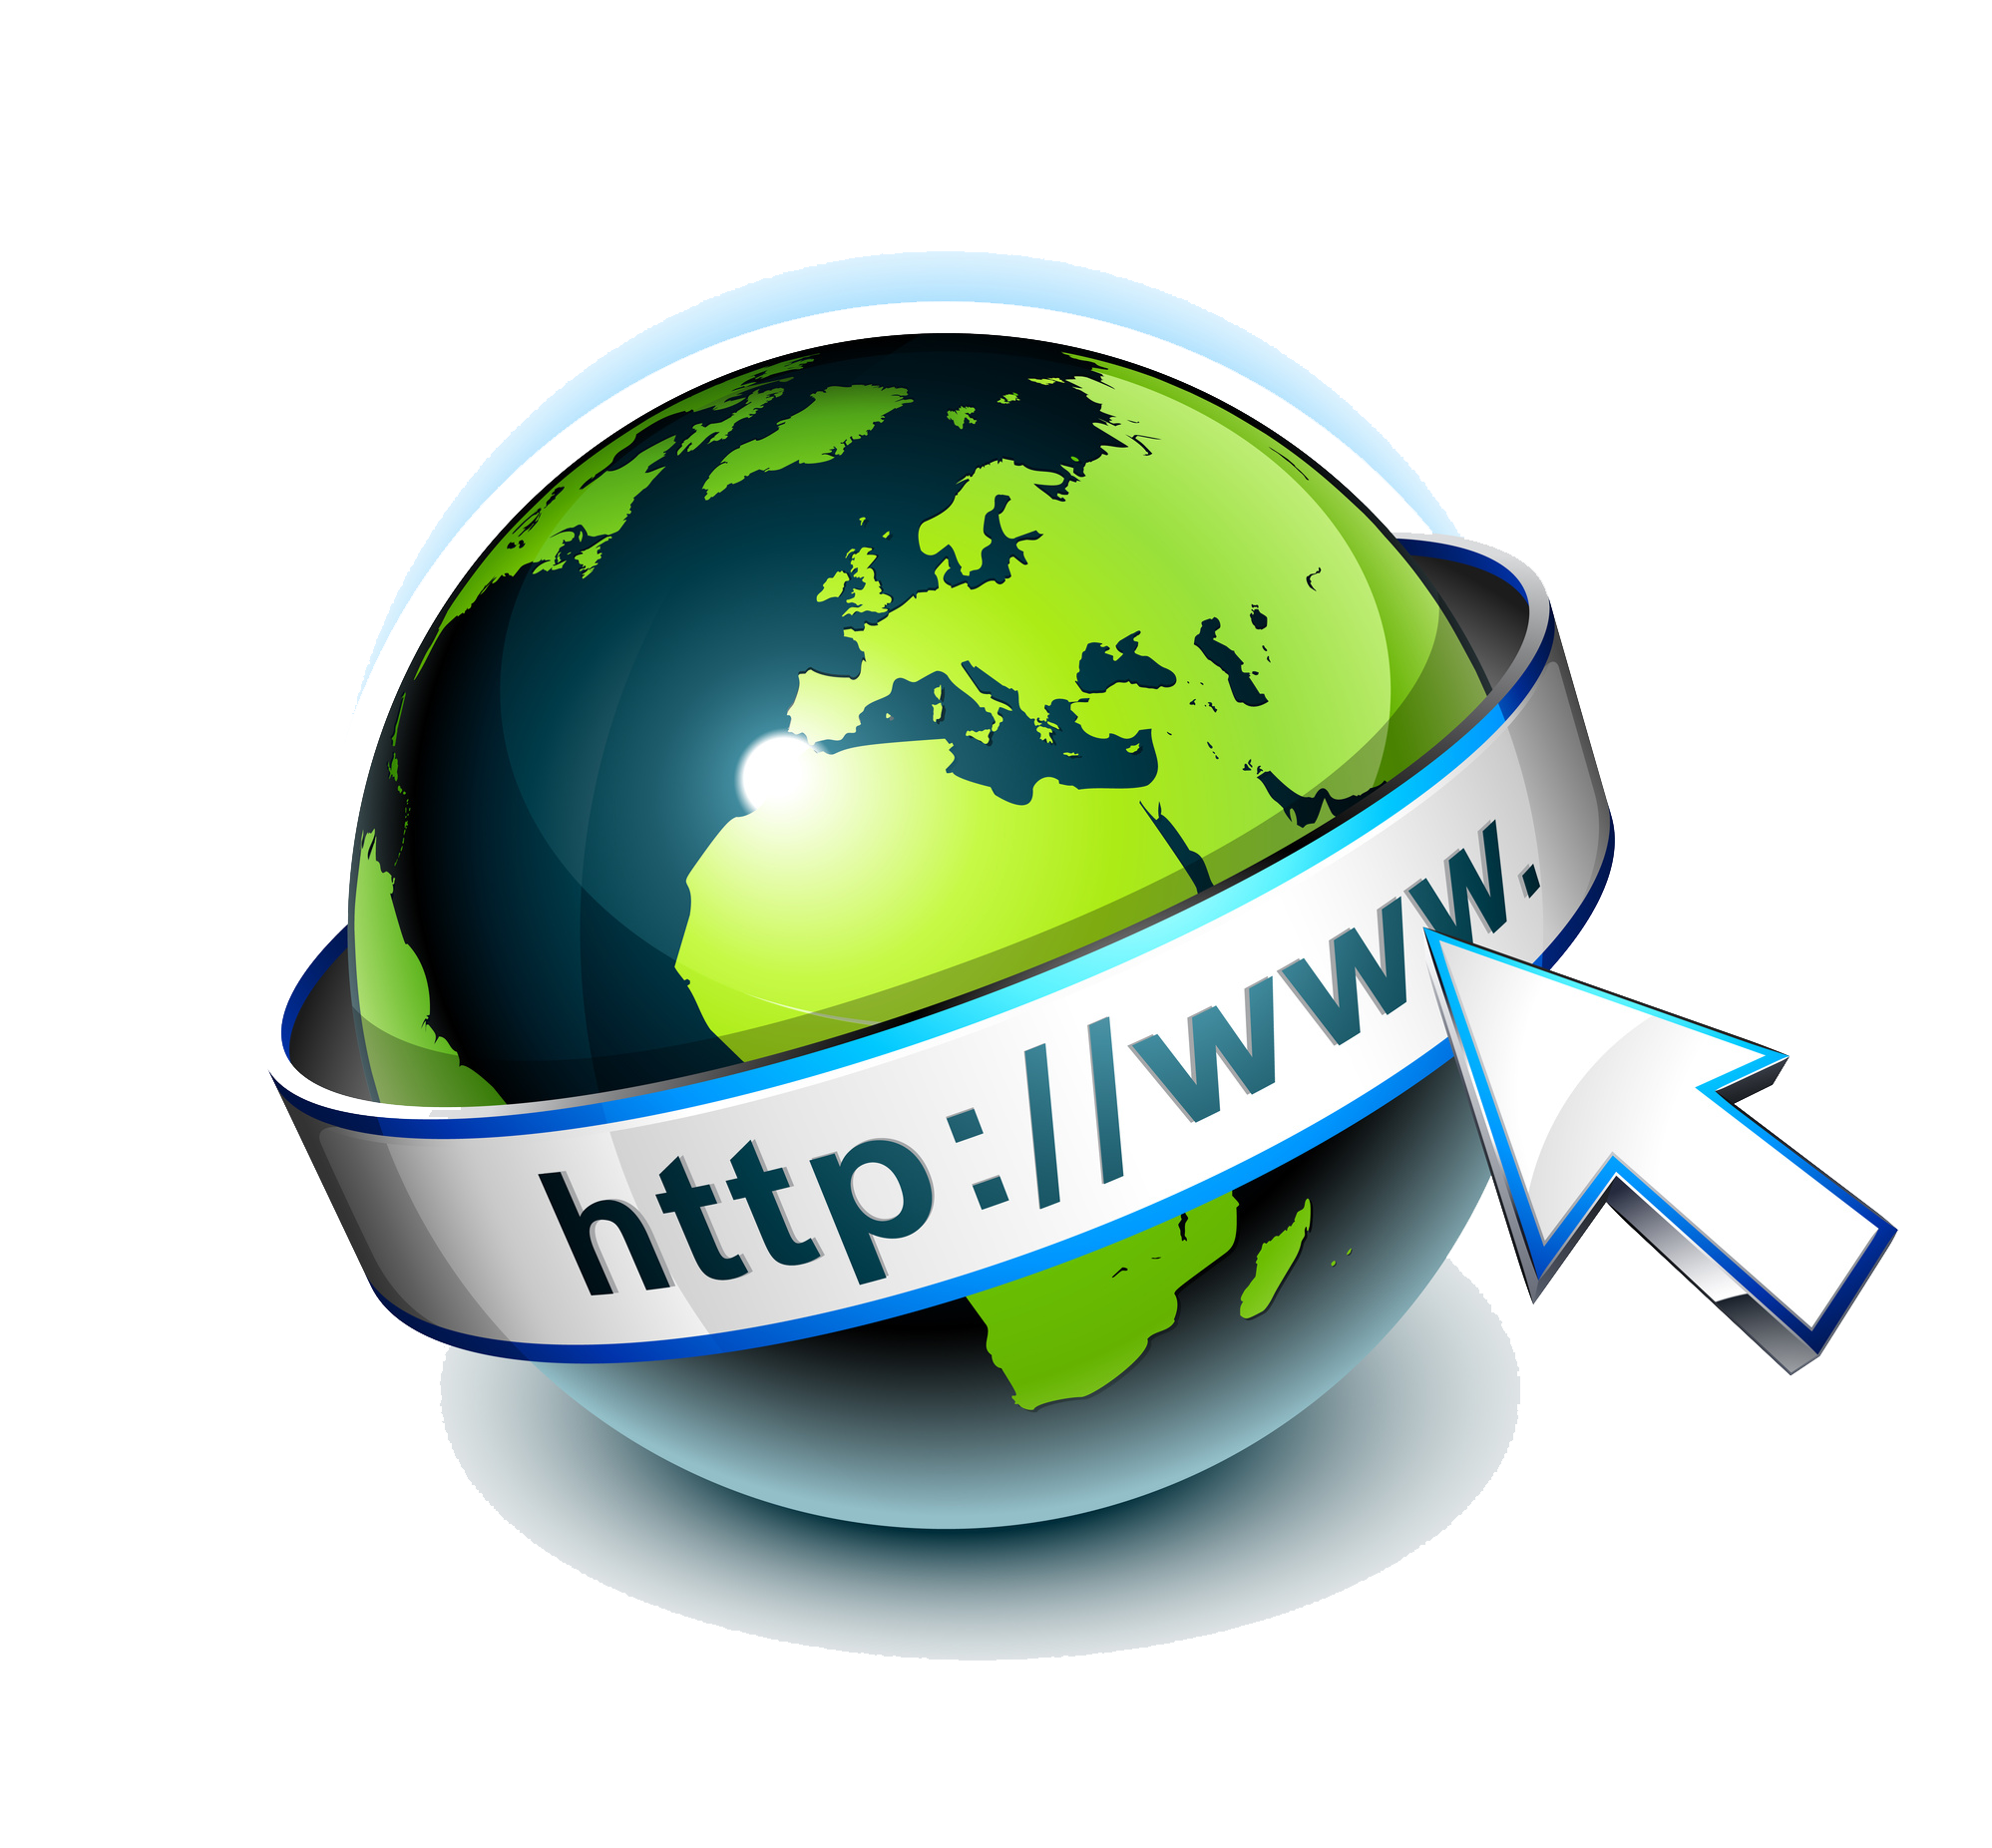 World Wide Web PNG Image - World Wide Web PNG